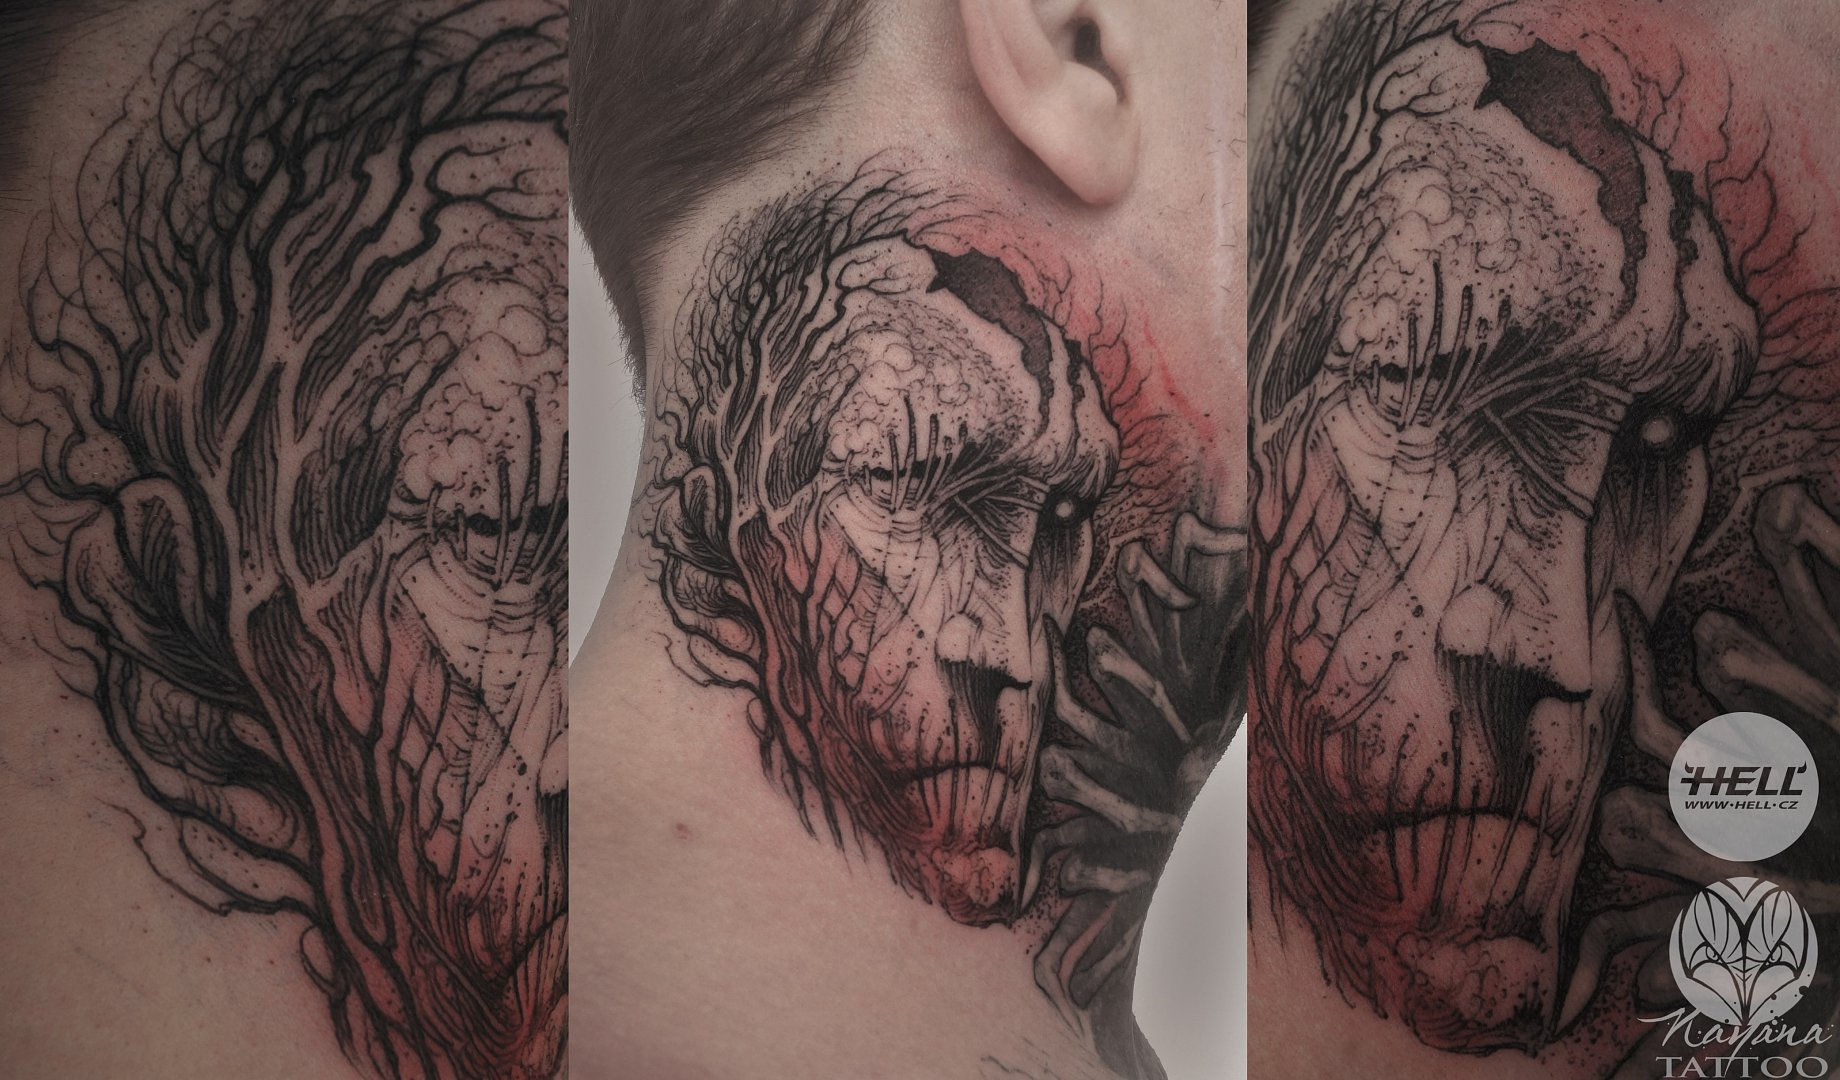 head-decay-beksinski-inspiration-tattoo-nayana